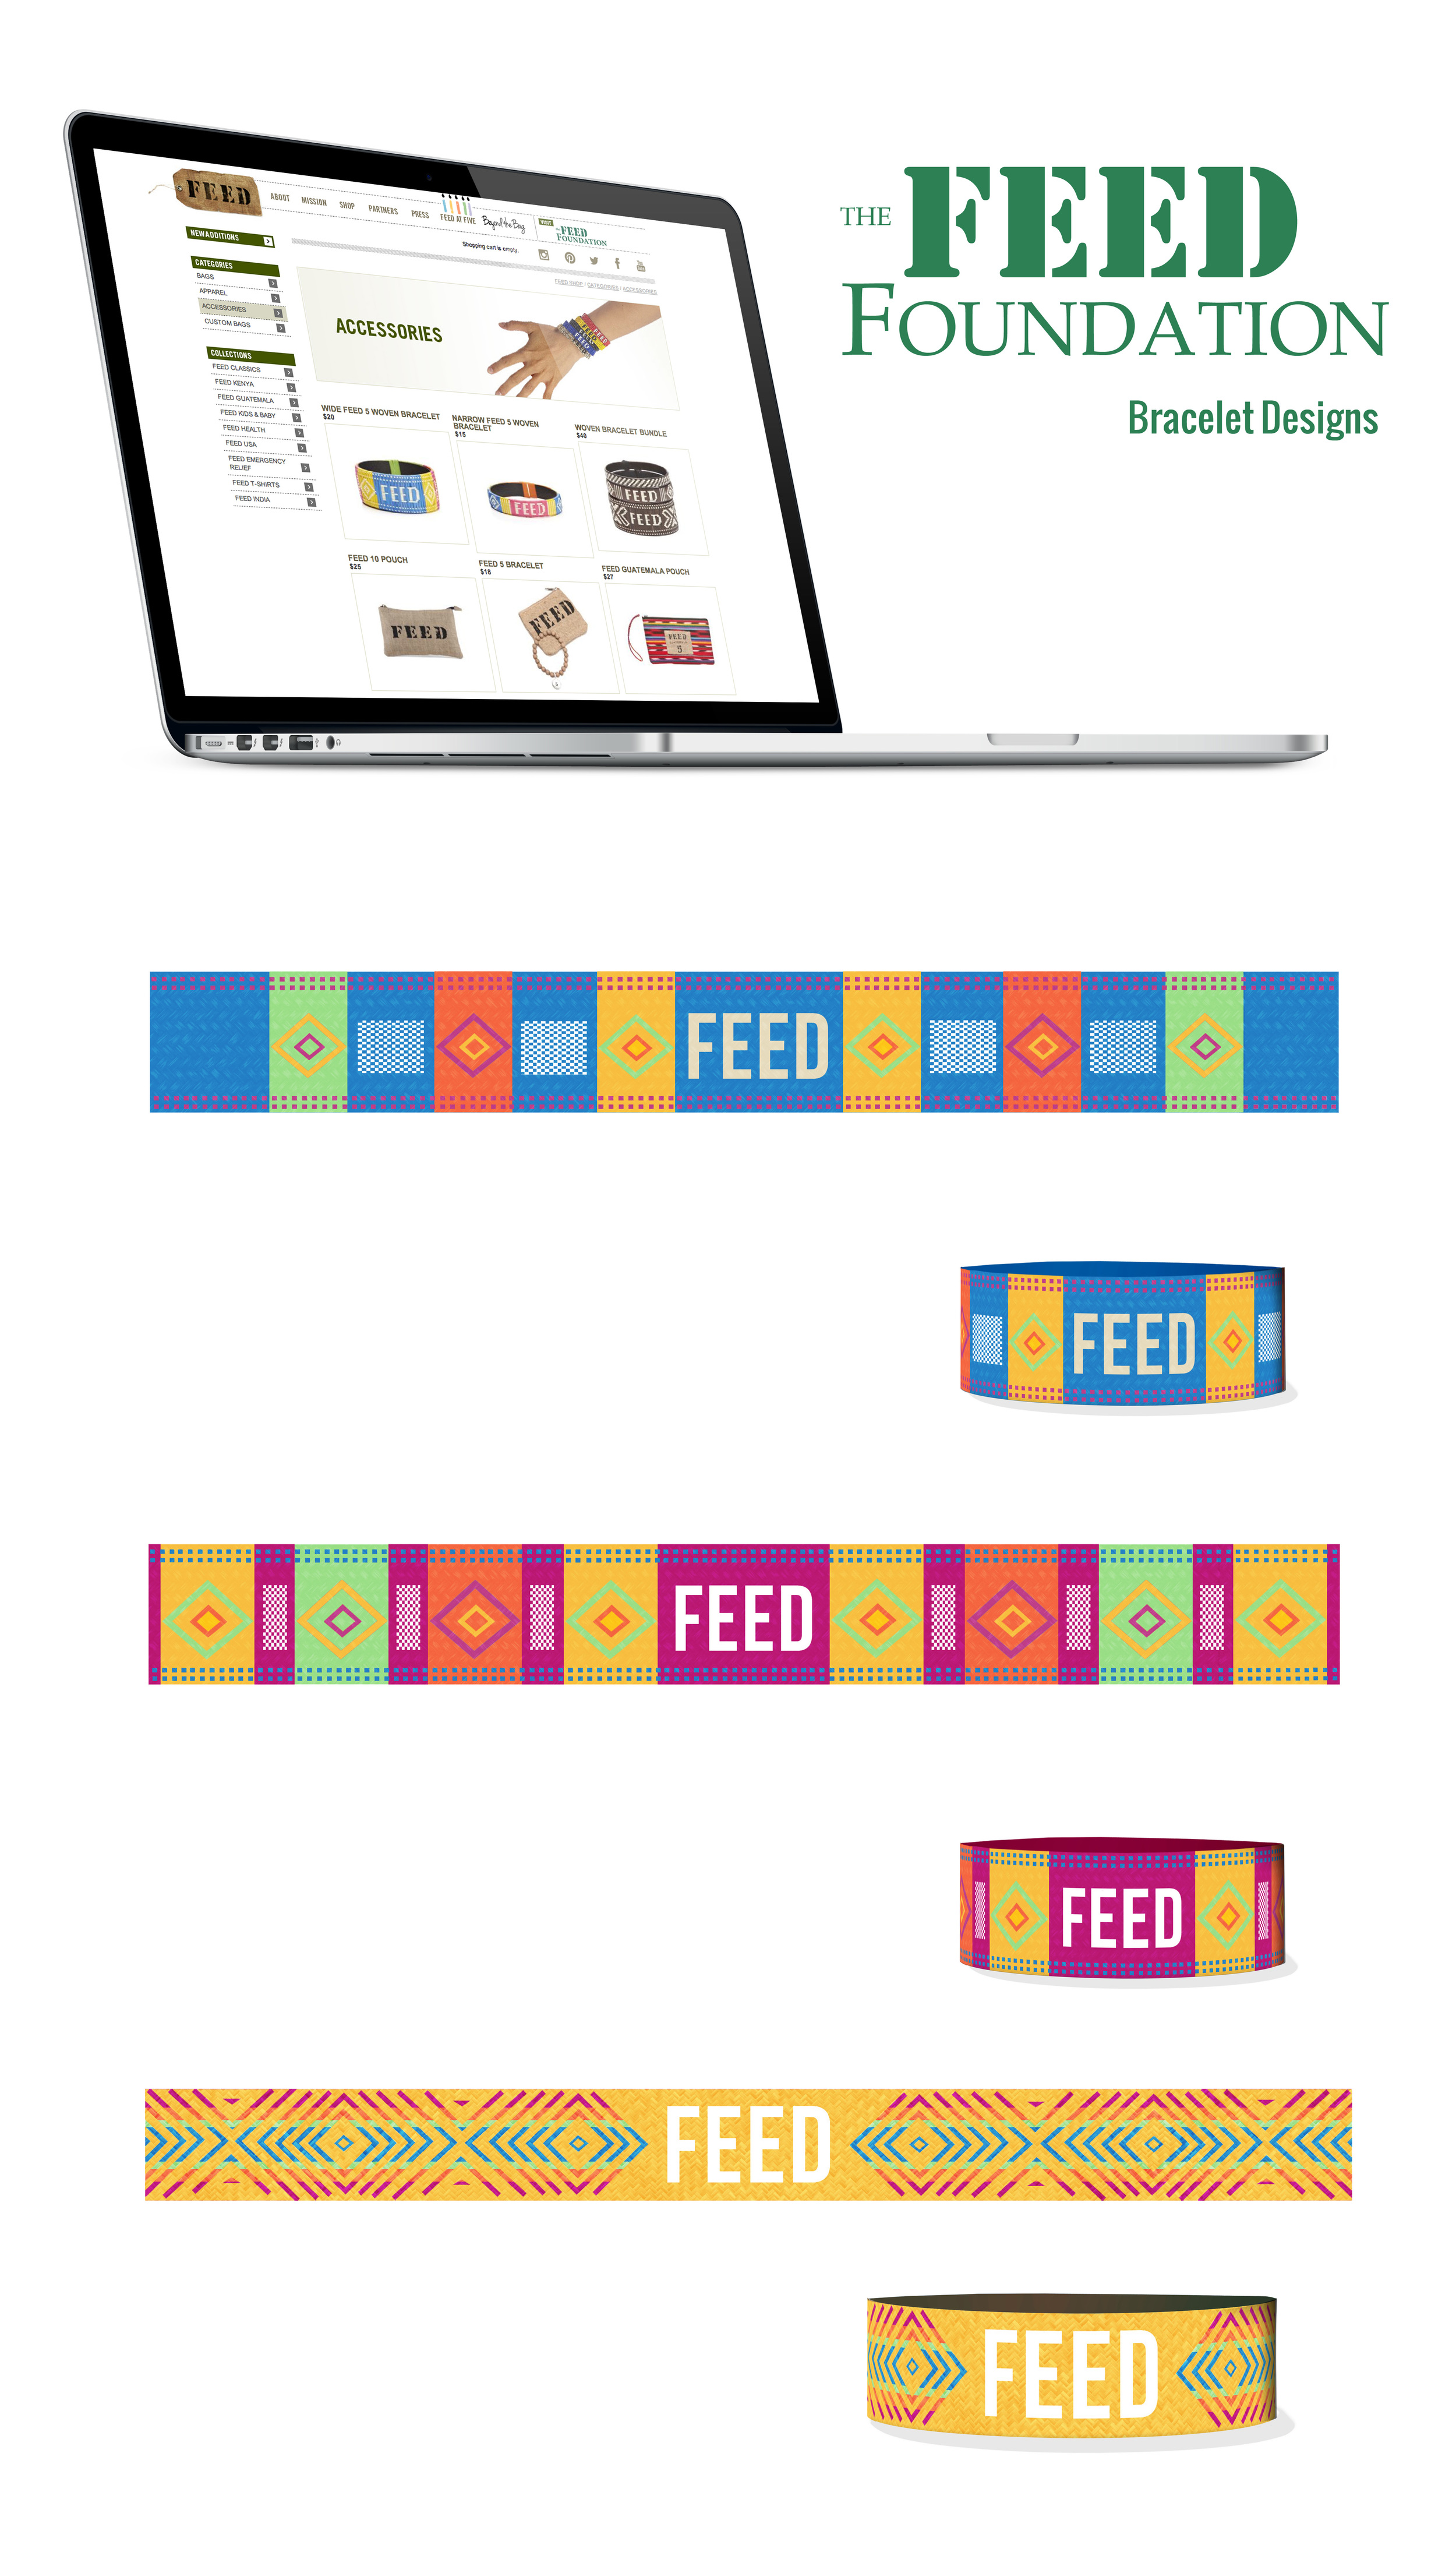 Client: The FEED Foundation  Type: Bracelet Designs